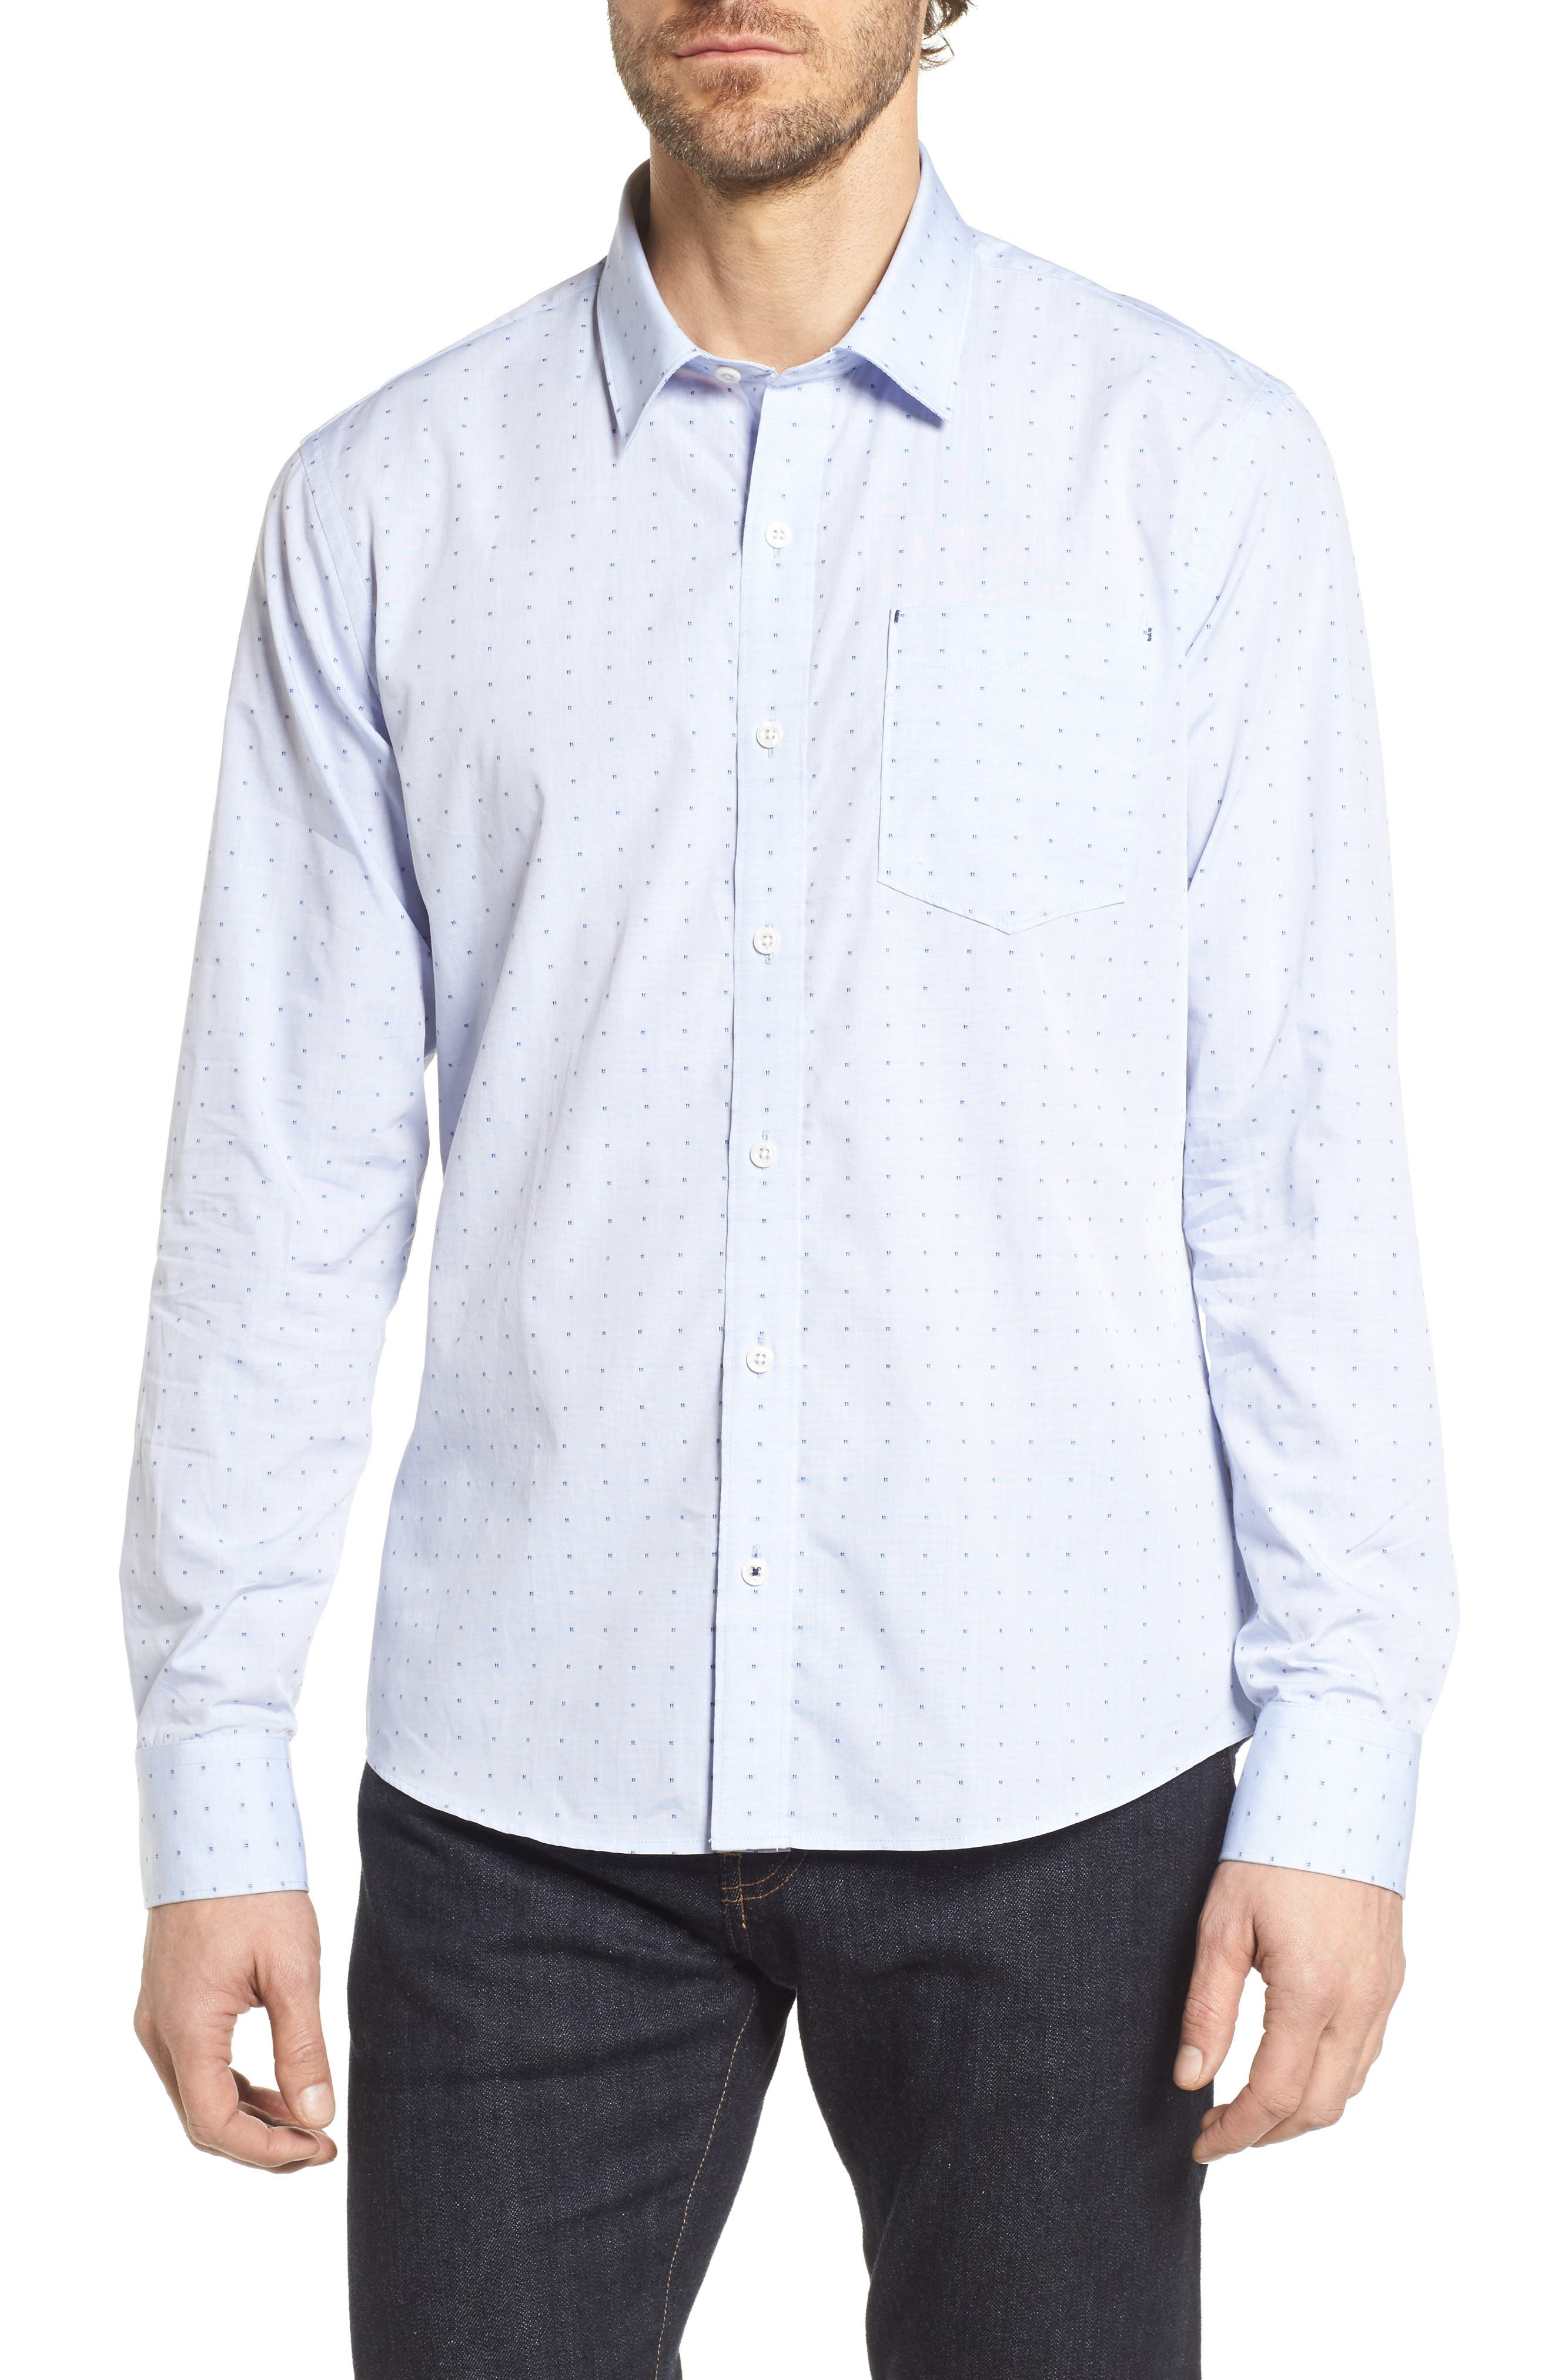 Trust in Me Woven Shirt,                         Main,                         color, 451